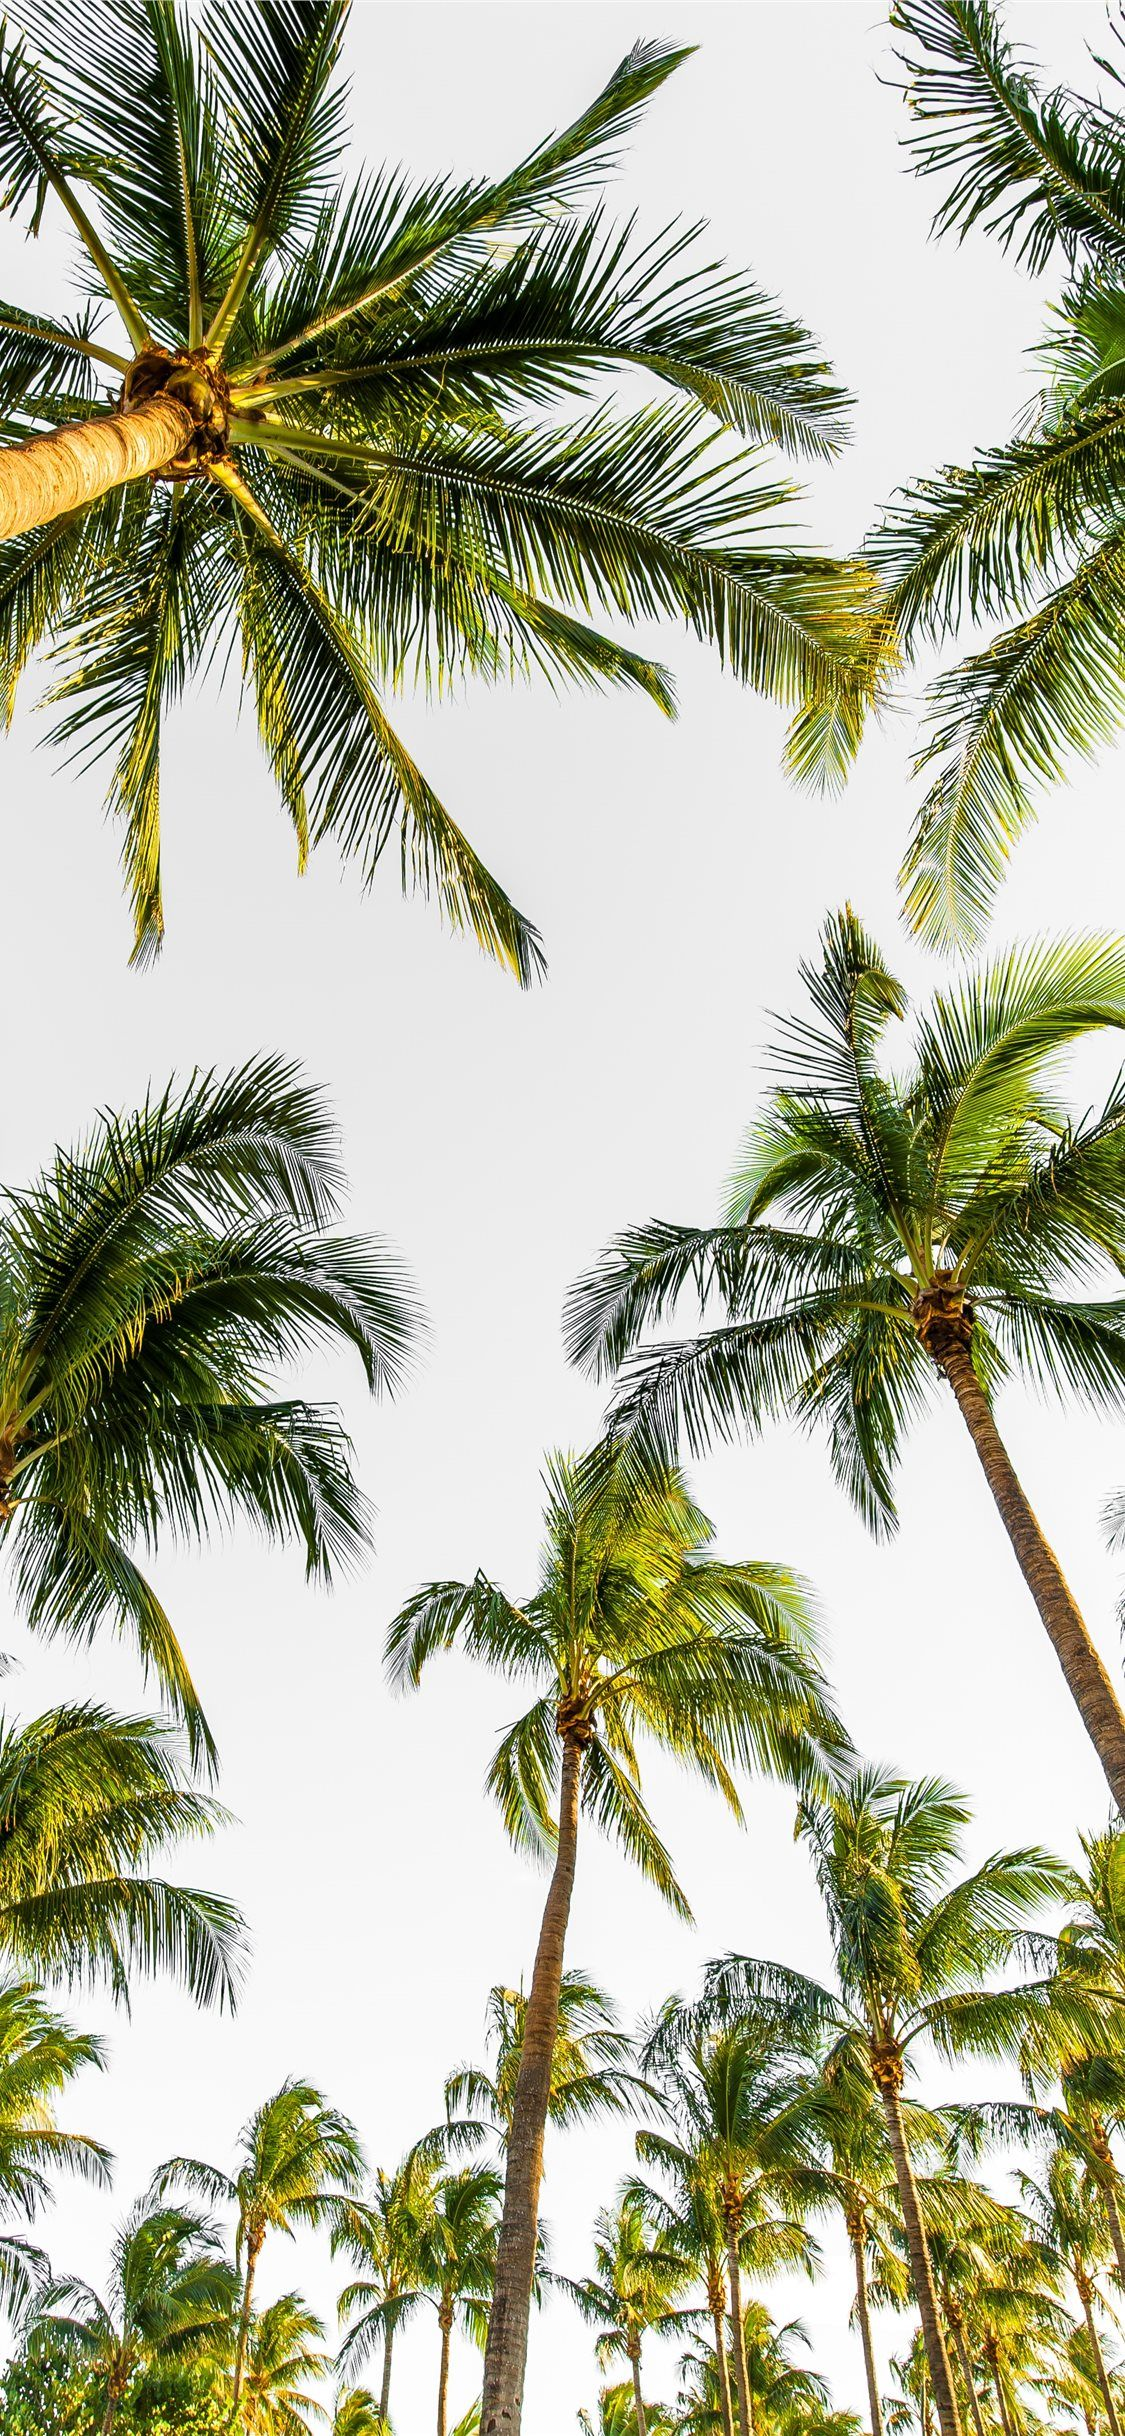 Free Download The Low Angle Photography Of Palm Trees Wallpaper Beaty Your Iphone Palm In 2020 Tree Wallpaper Iphone Pretty Wallpaper Iphone Beach Wallpaper Iphone